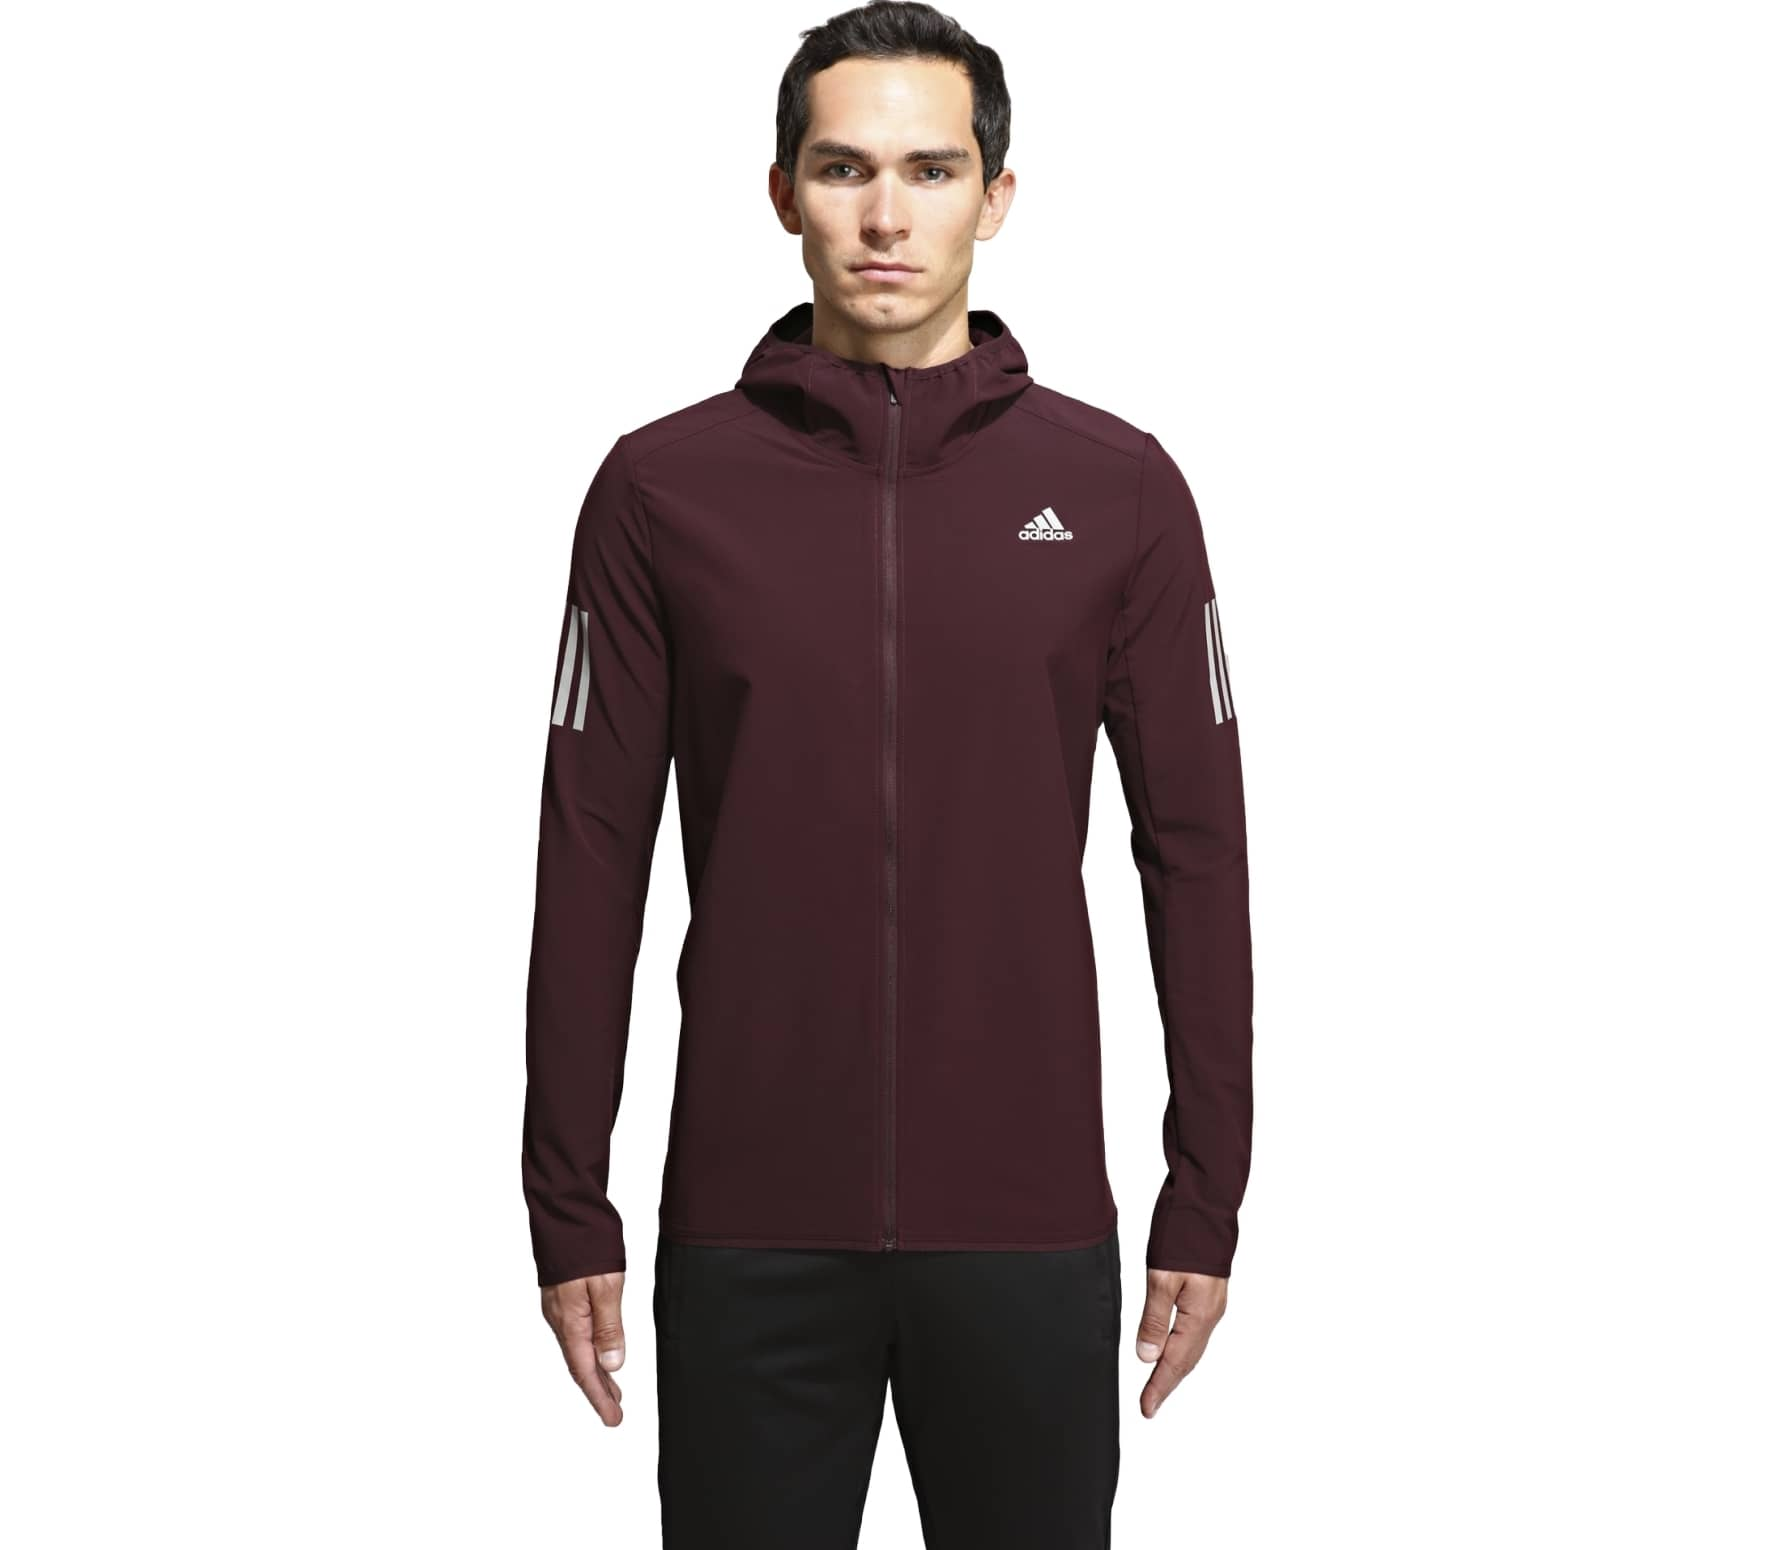 Adidas - Response Shell men's running jacket (dark red) - M thumbnail